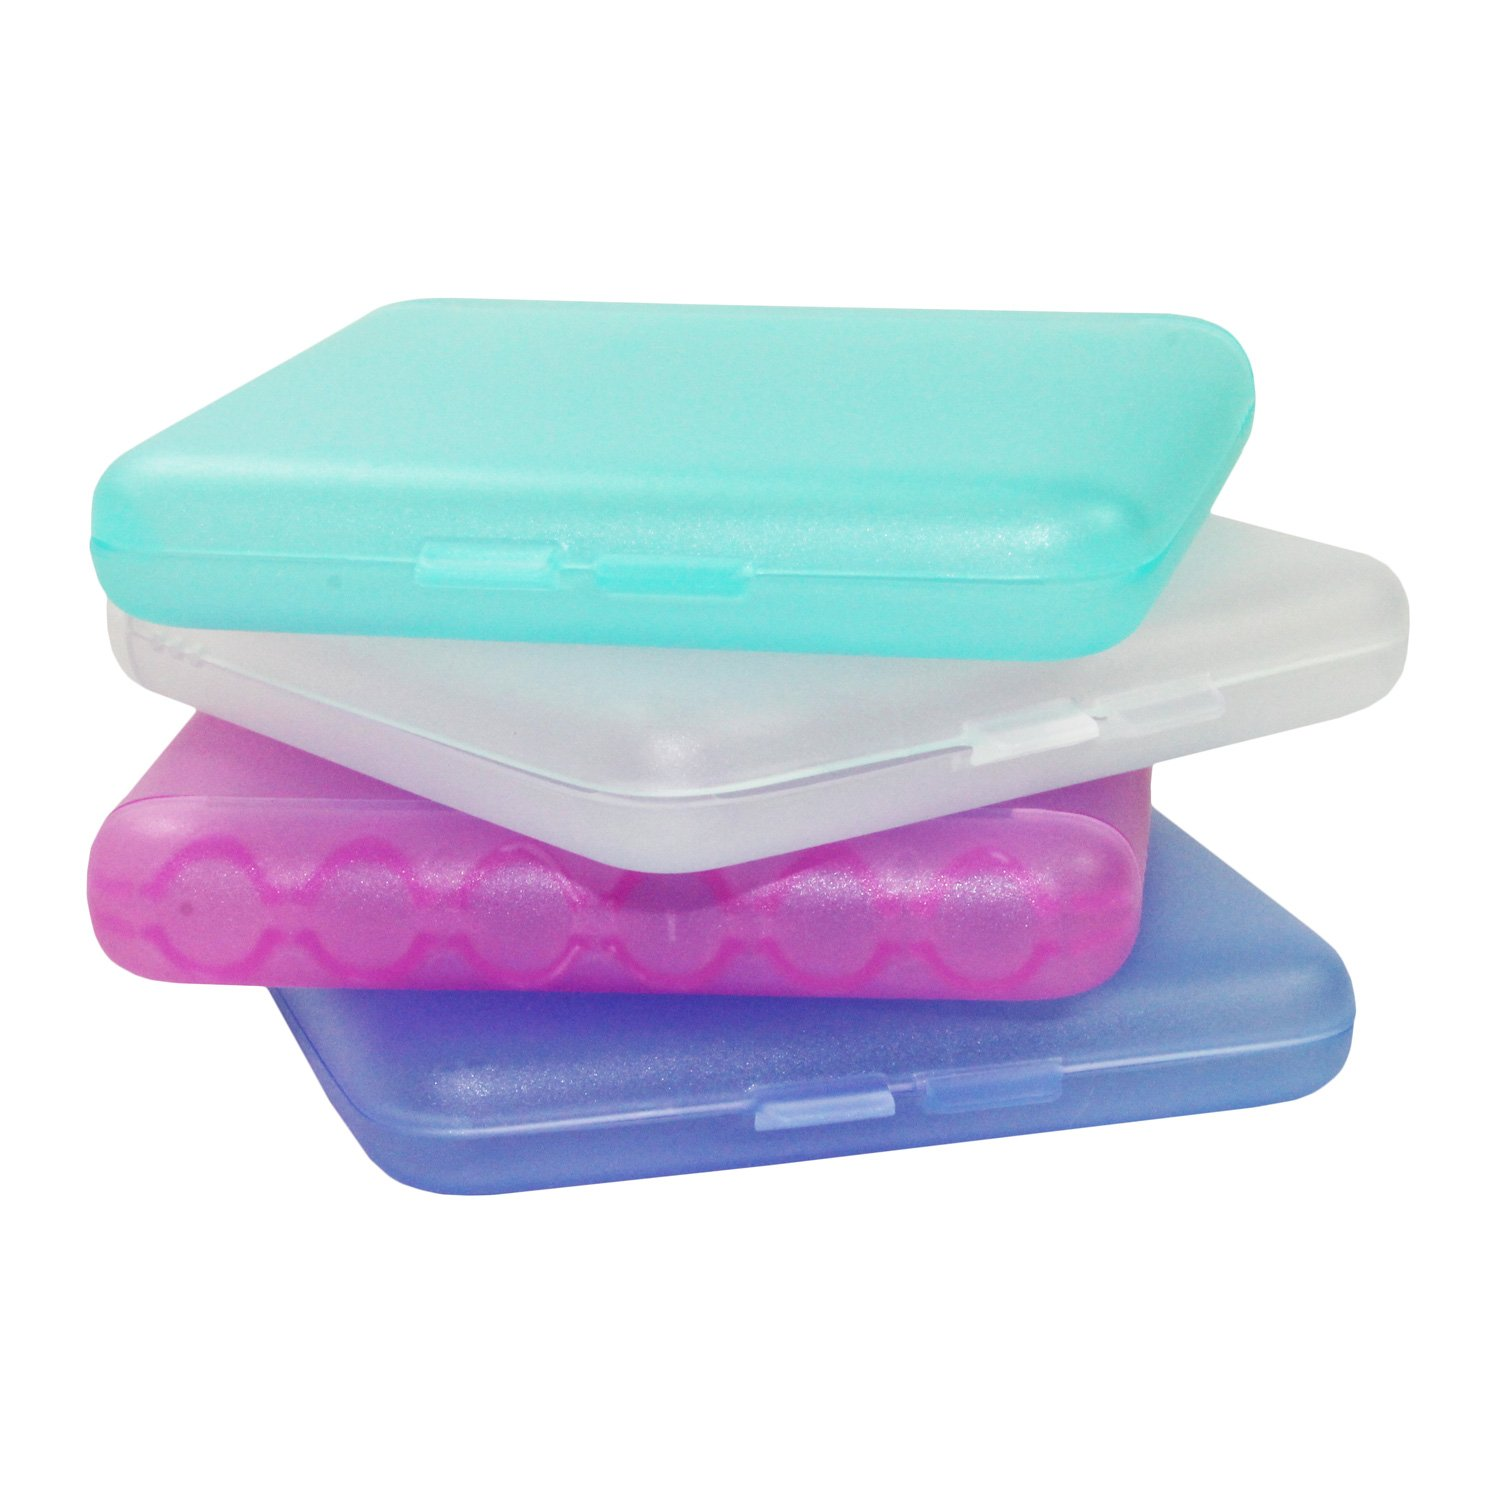 TePe Interdental Brushes Travel Case